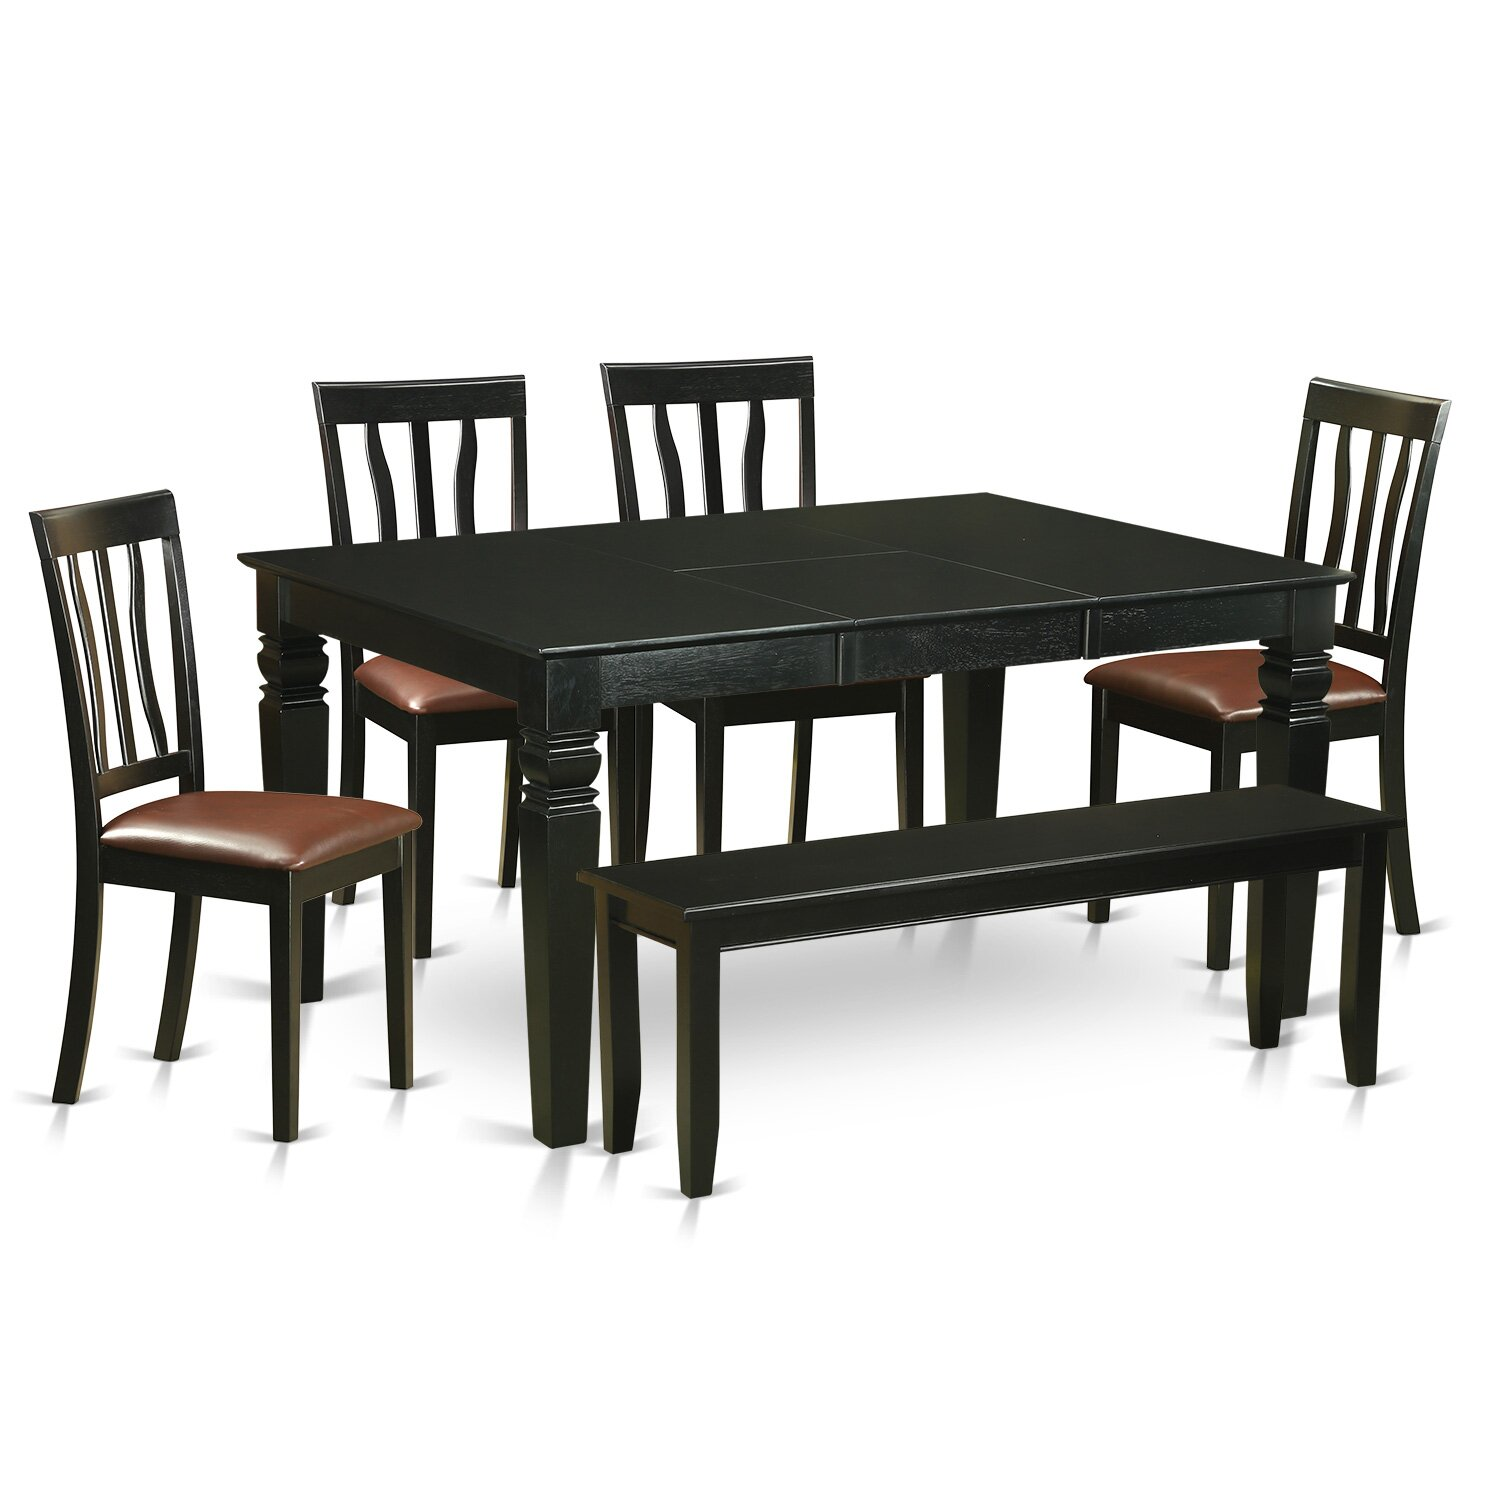 Wooden importers weston 6 piece dining set wayfair for Dining room tables 1940s